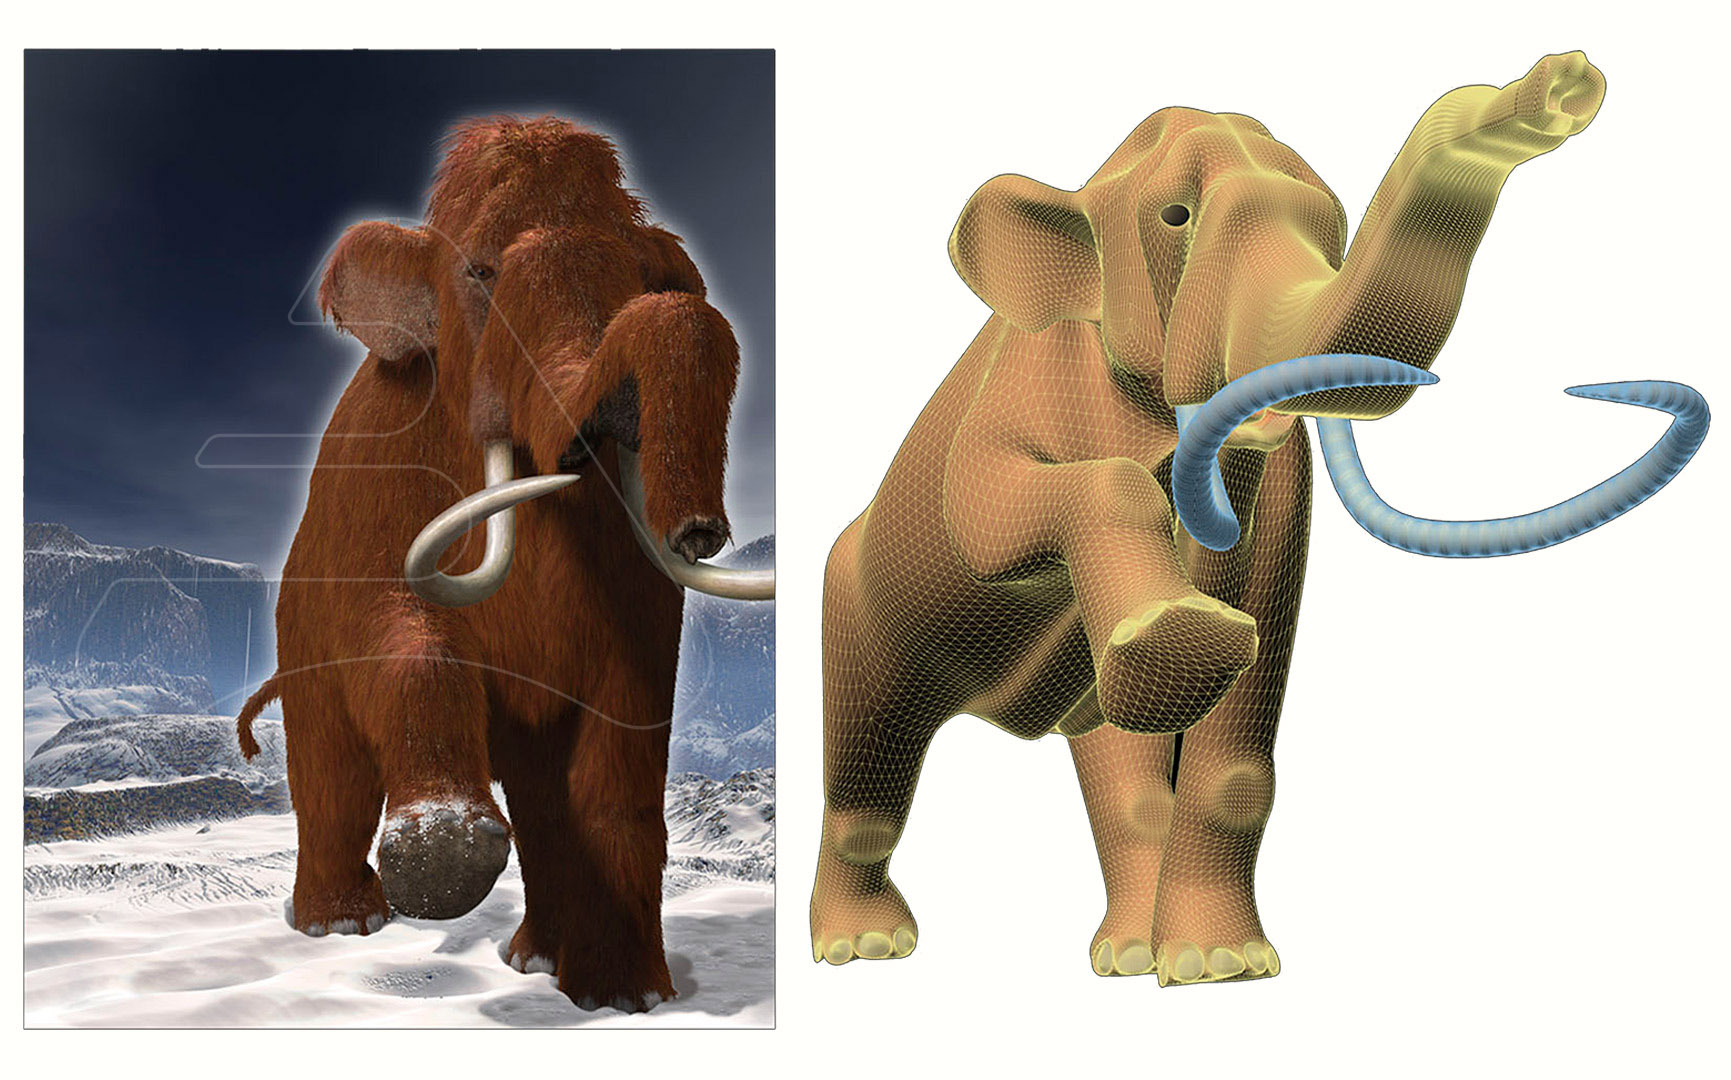 Mammoth / MC publishers / 3D Modelling and Illustration